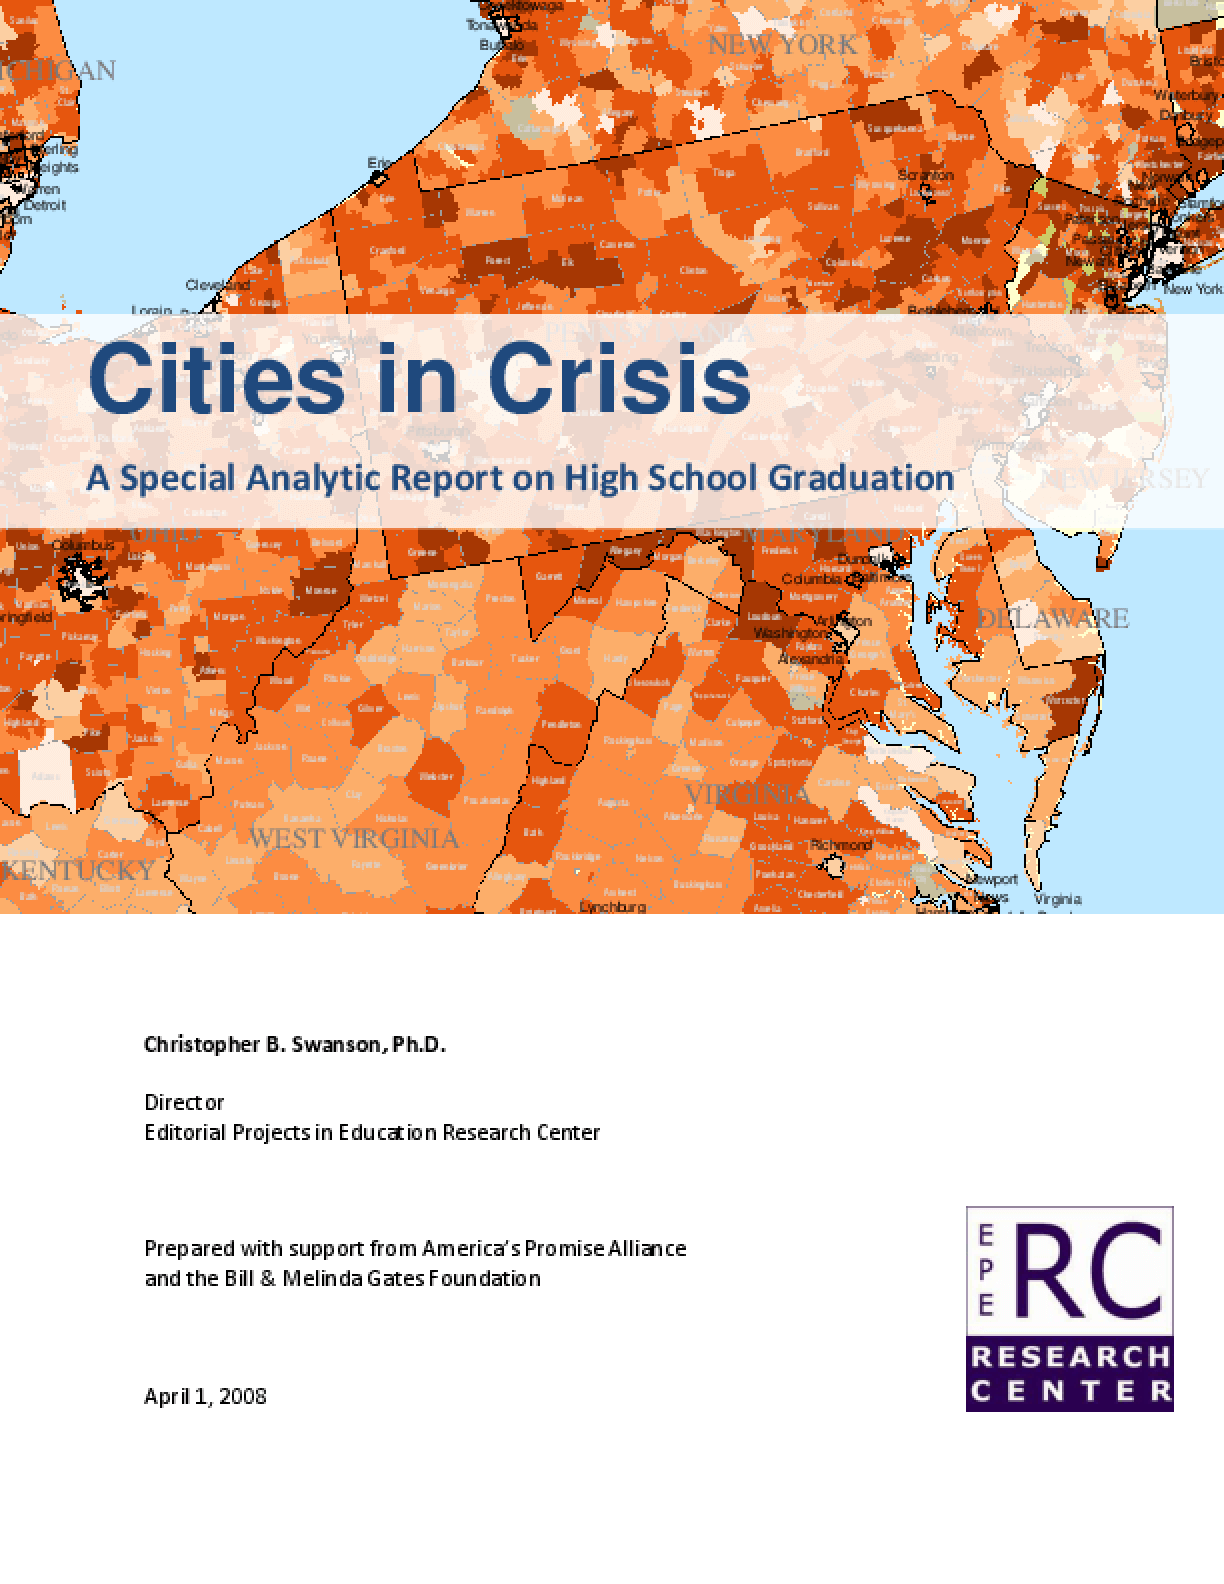 Cities in Crisis: A Special Analytic Report on High School Graduation